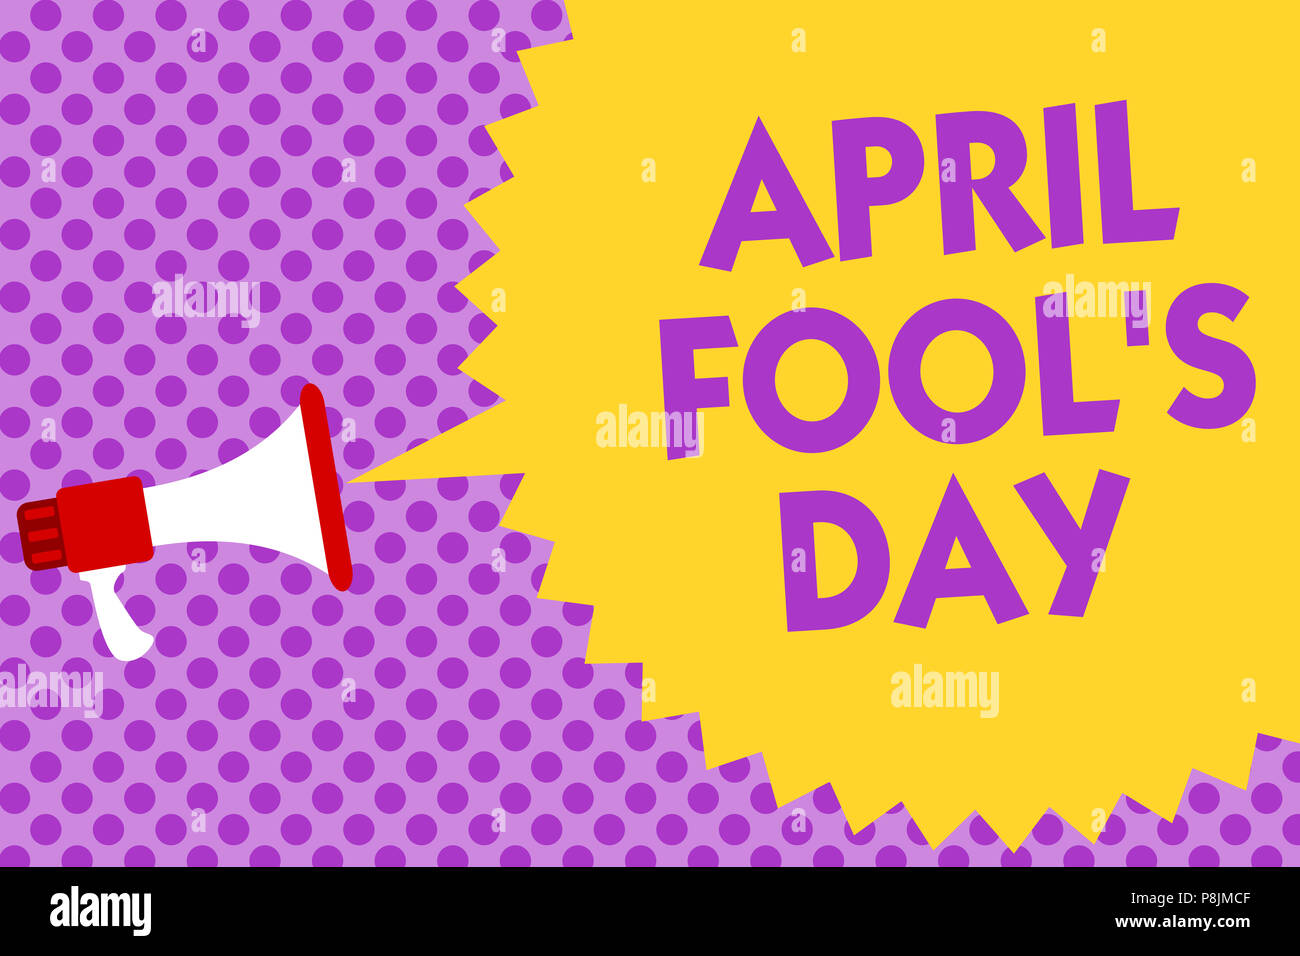 Writing note showing April Fool s is Day. Business photo showcasing Practical jokes humor pranks Celebration funny foolish Multiline text purple bubbl - Stock Image